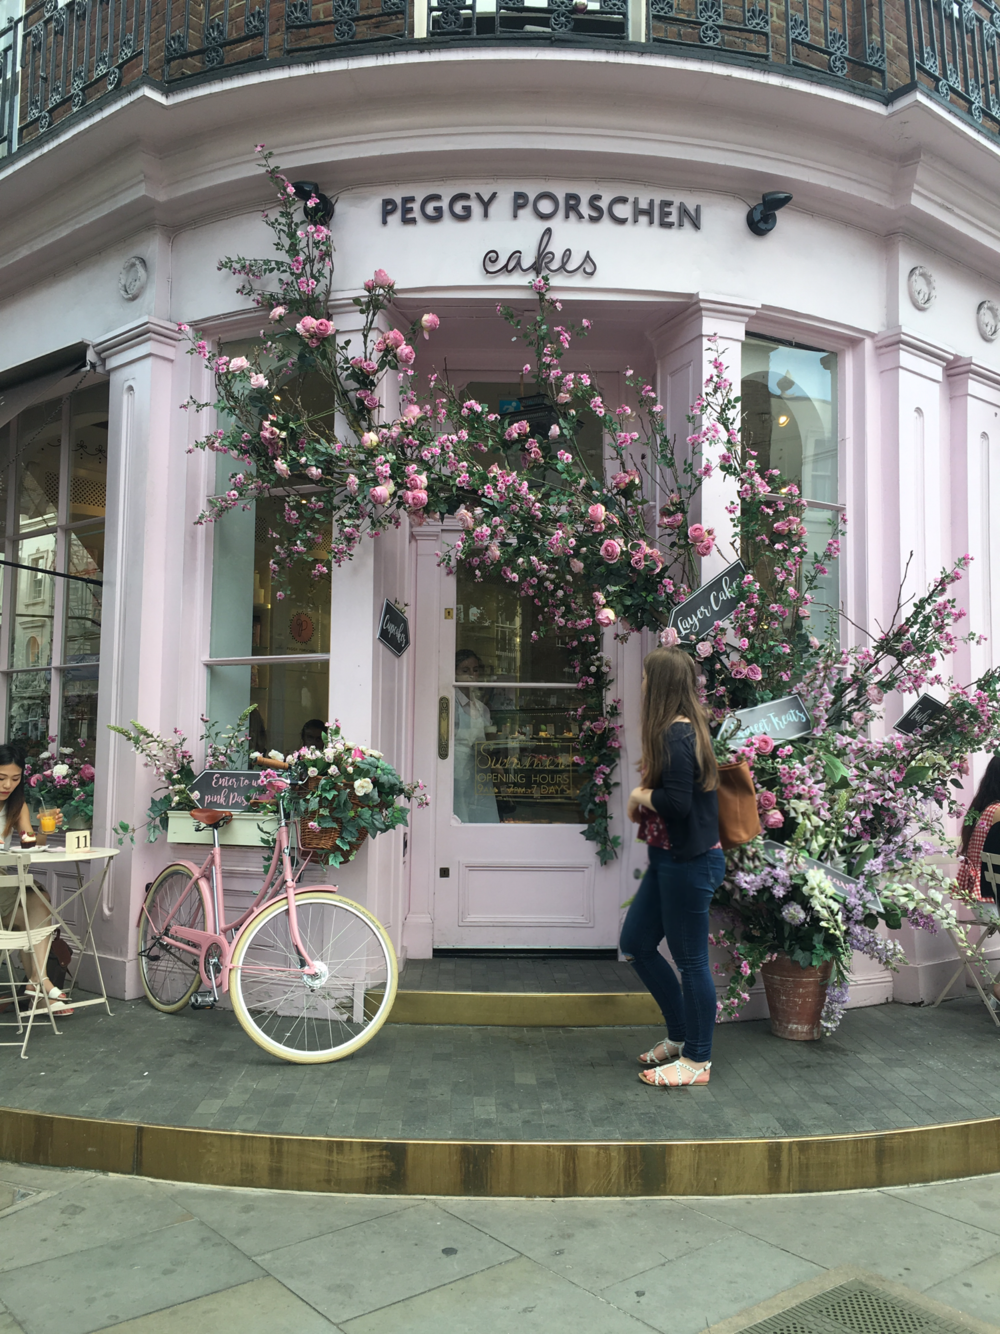 Andrea in front of the Peggy Porschen cake shop in London's Belgravia.